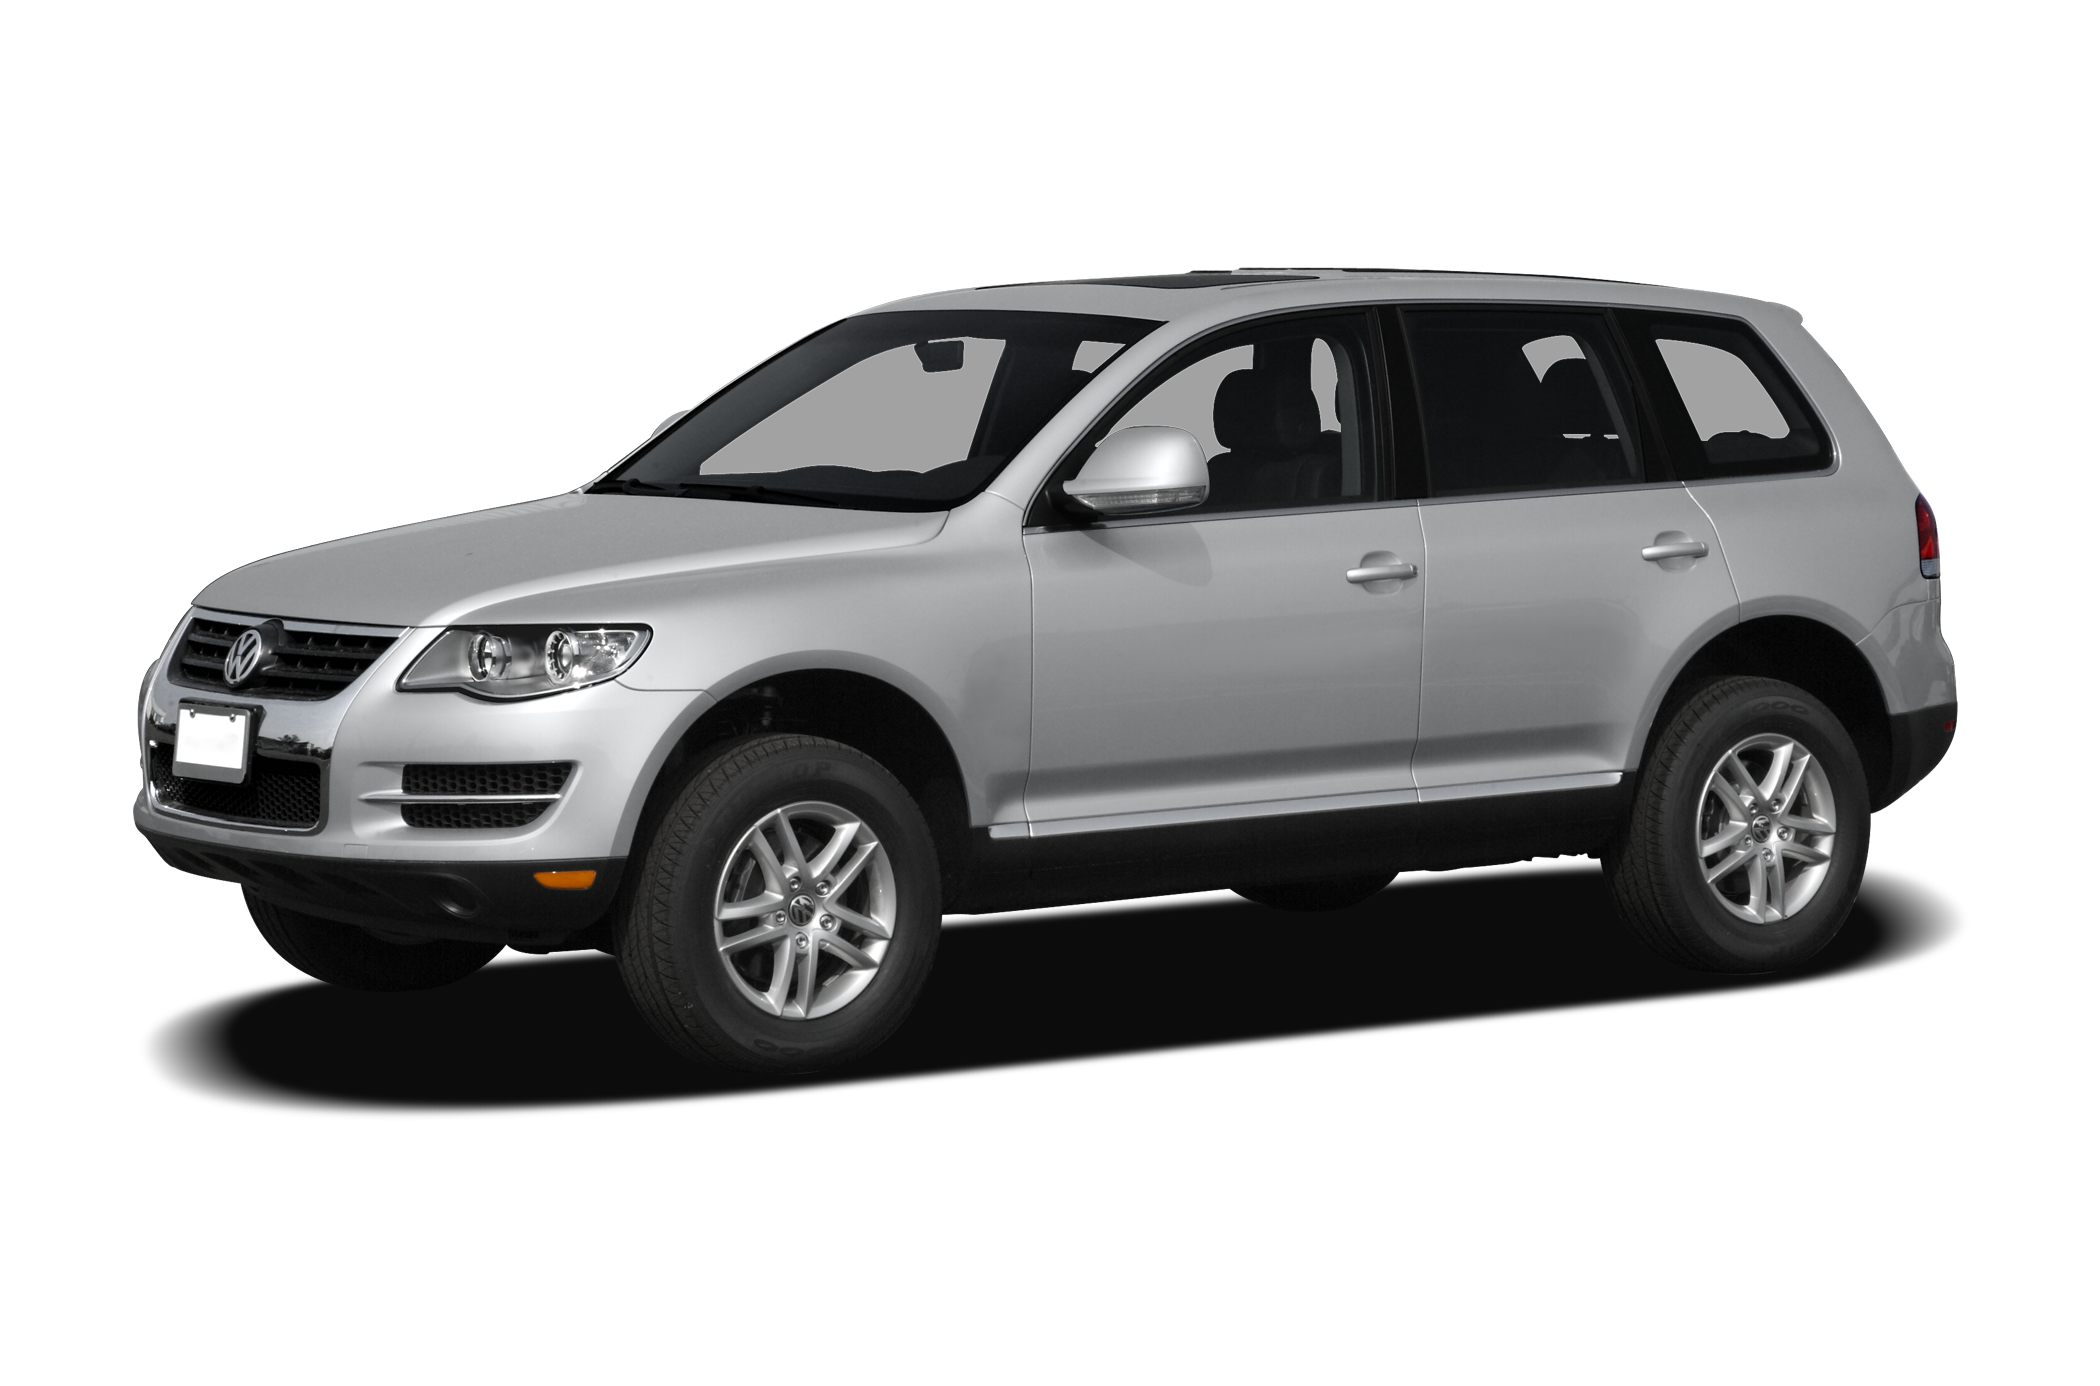 2008 Volkswagen Touareg 2 V10 Tdi 4dr All Wheel Drive Specs And Prices